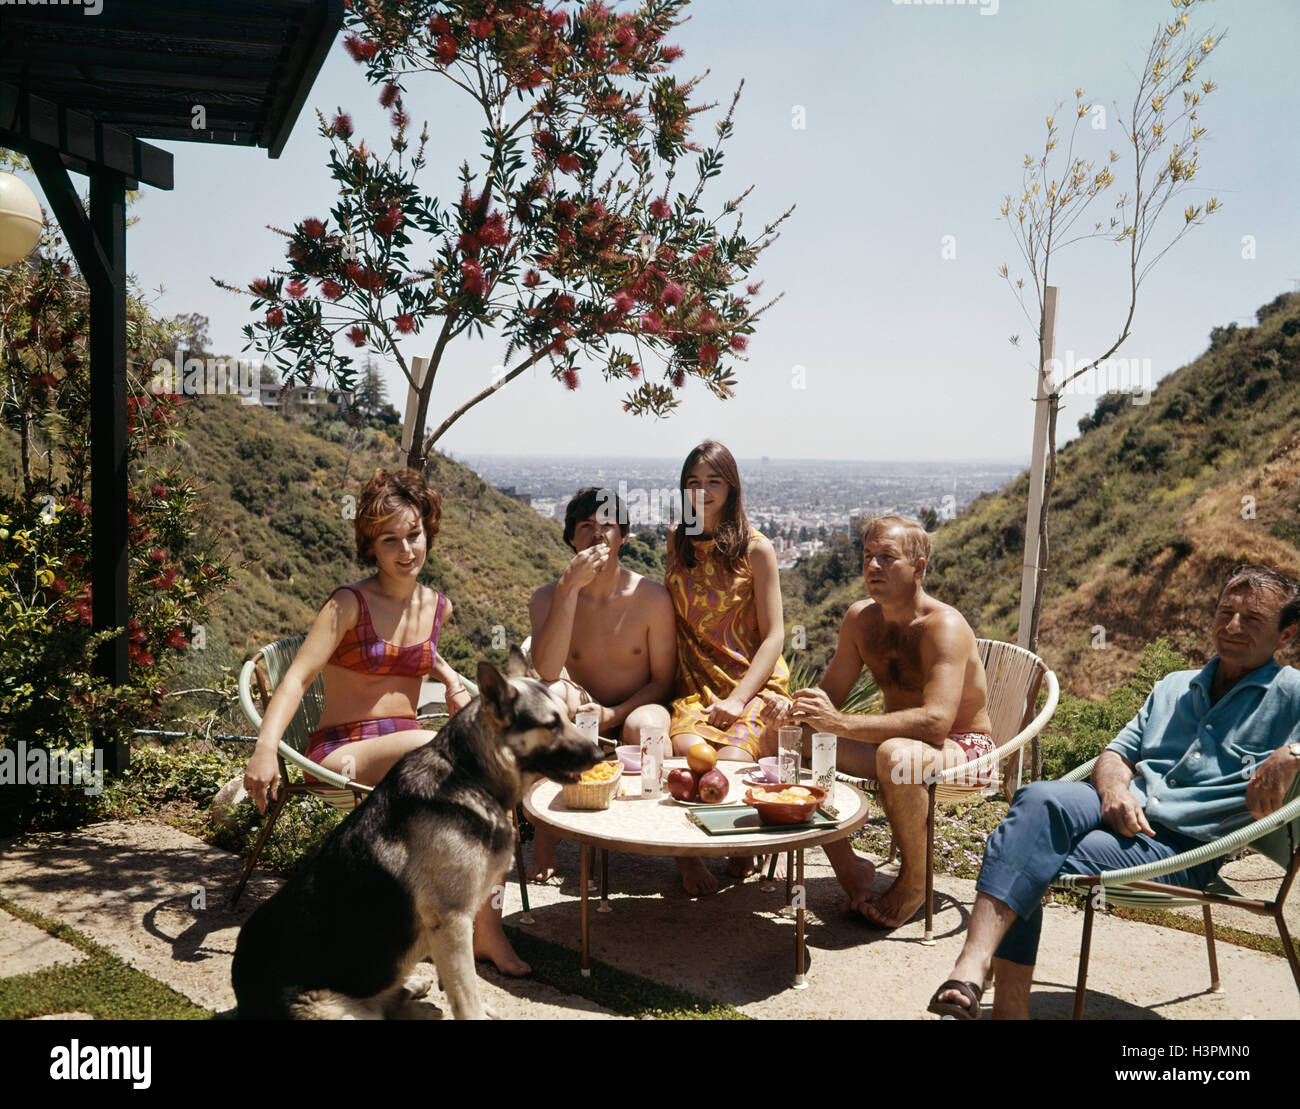 1960s THREE MEN TWO WOMEN WEARING BATHING SUITS SITTING ON PATIO WITH GERMAN SHEPHERD DOG LOS ANGELES HILLS CALIFORNIA - Stock Image